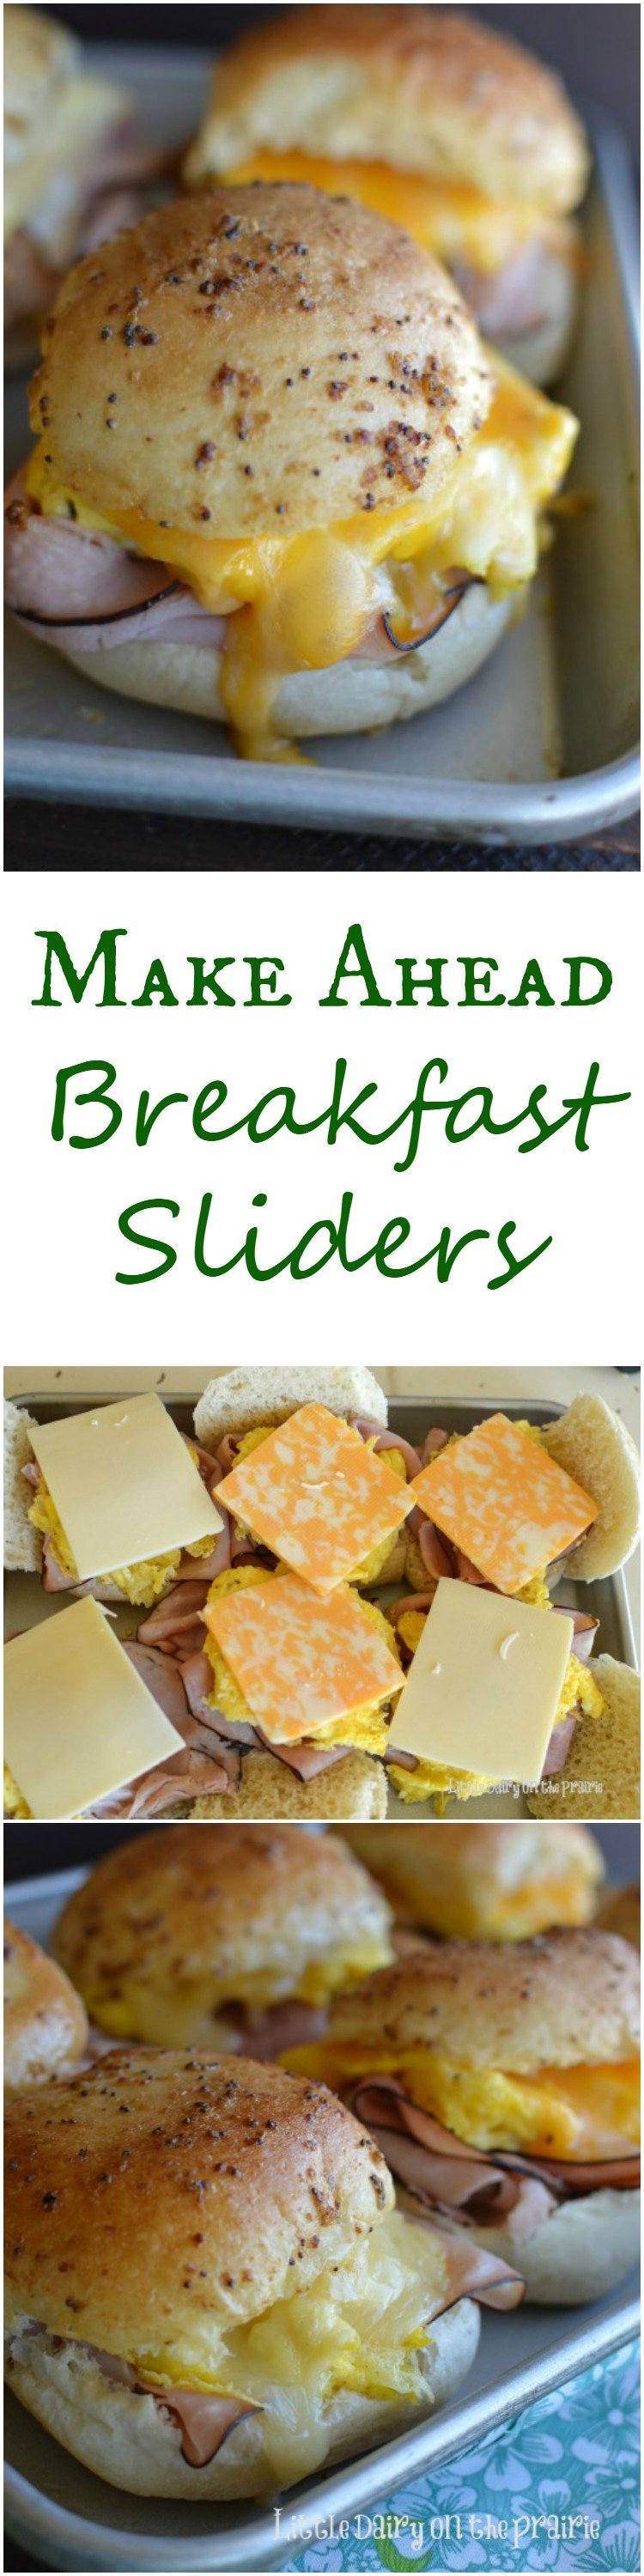 Collage with images of sliders made with ham, eggs, and cheese